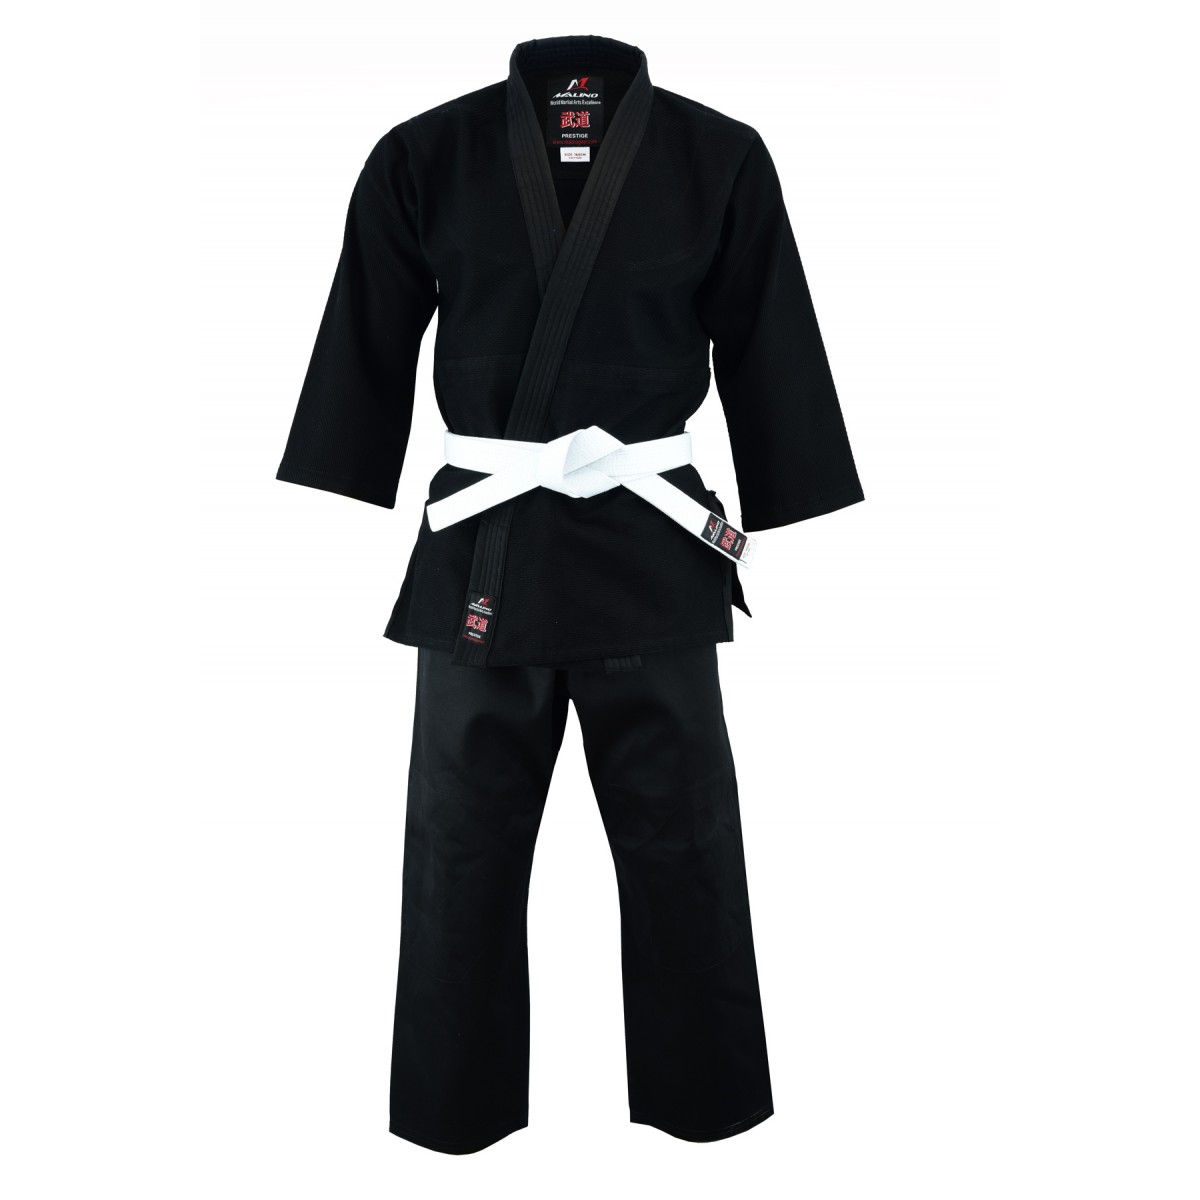 Malino Kids Middleweight Judo Suit Black - 450g